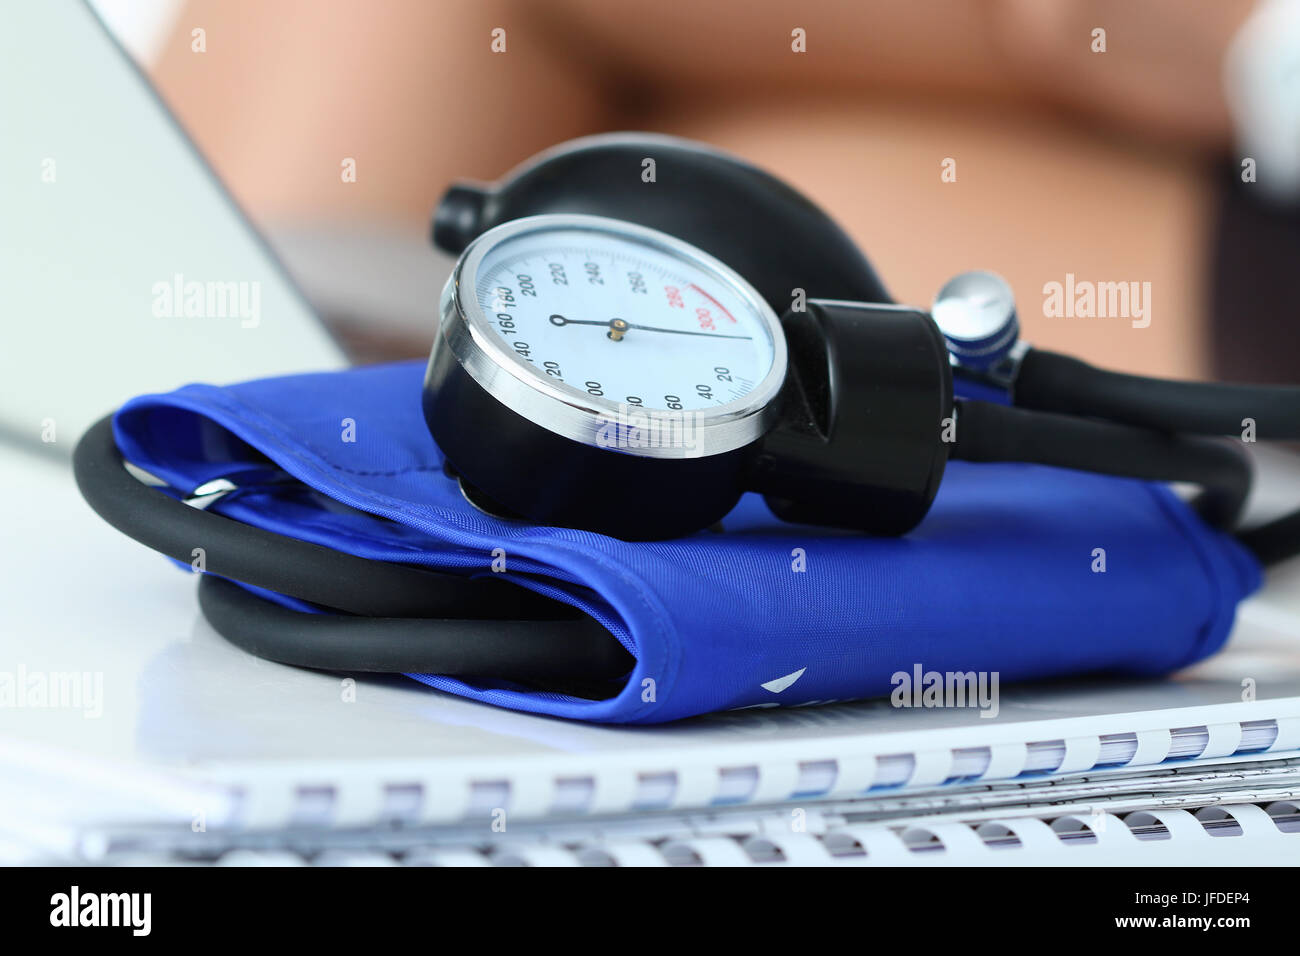 Medicine doctor working place. Close up view of manometer laying on working table at physician office. Hospital - Stock Image